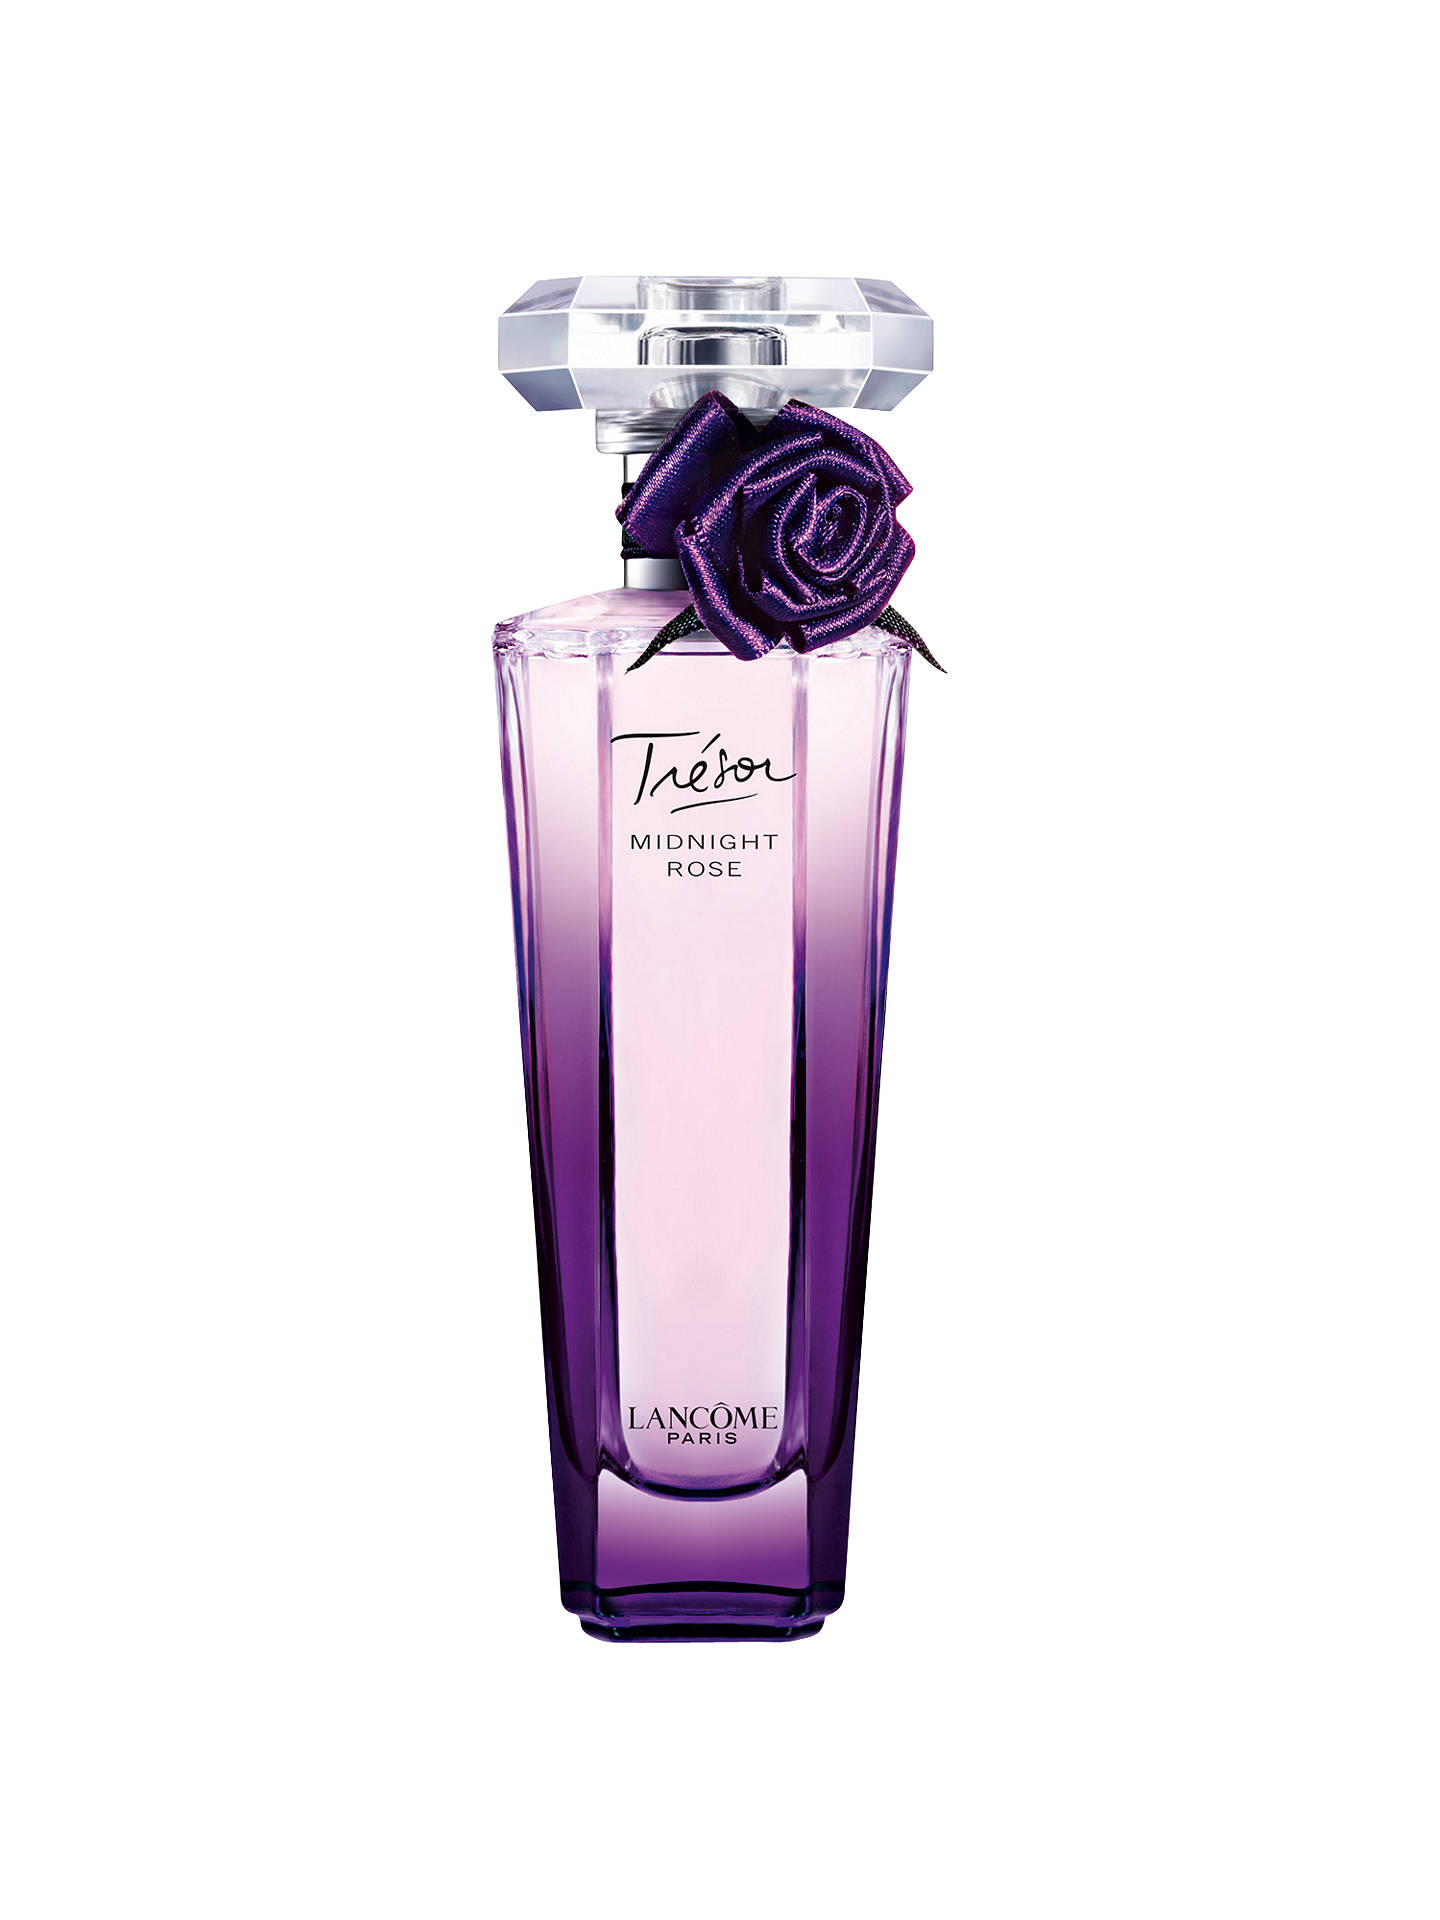 Trésor Parfum Eau Midnight John De At Partners Lewisamp; Rose Lancôme YWEID9eH2